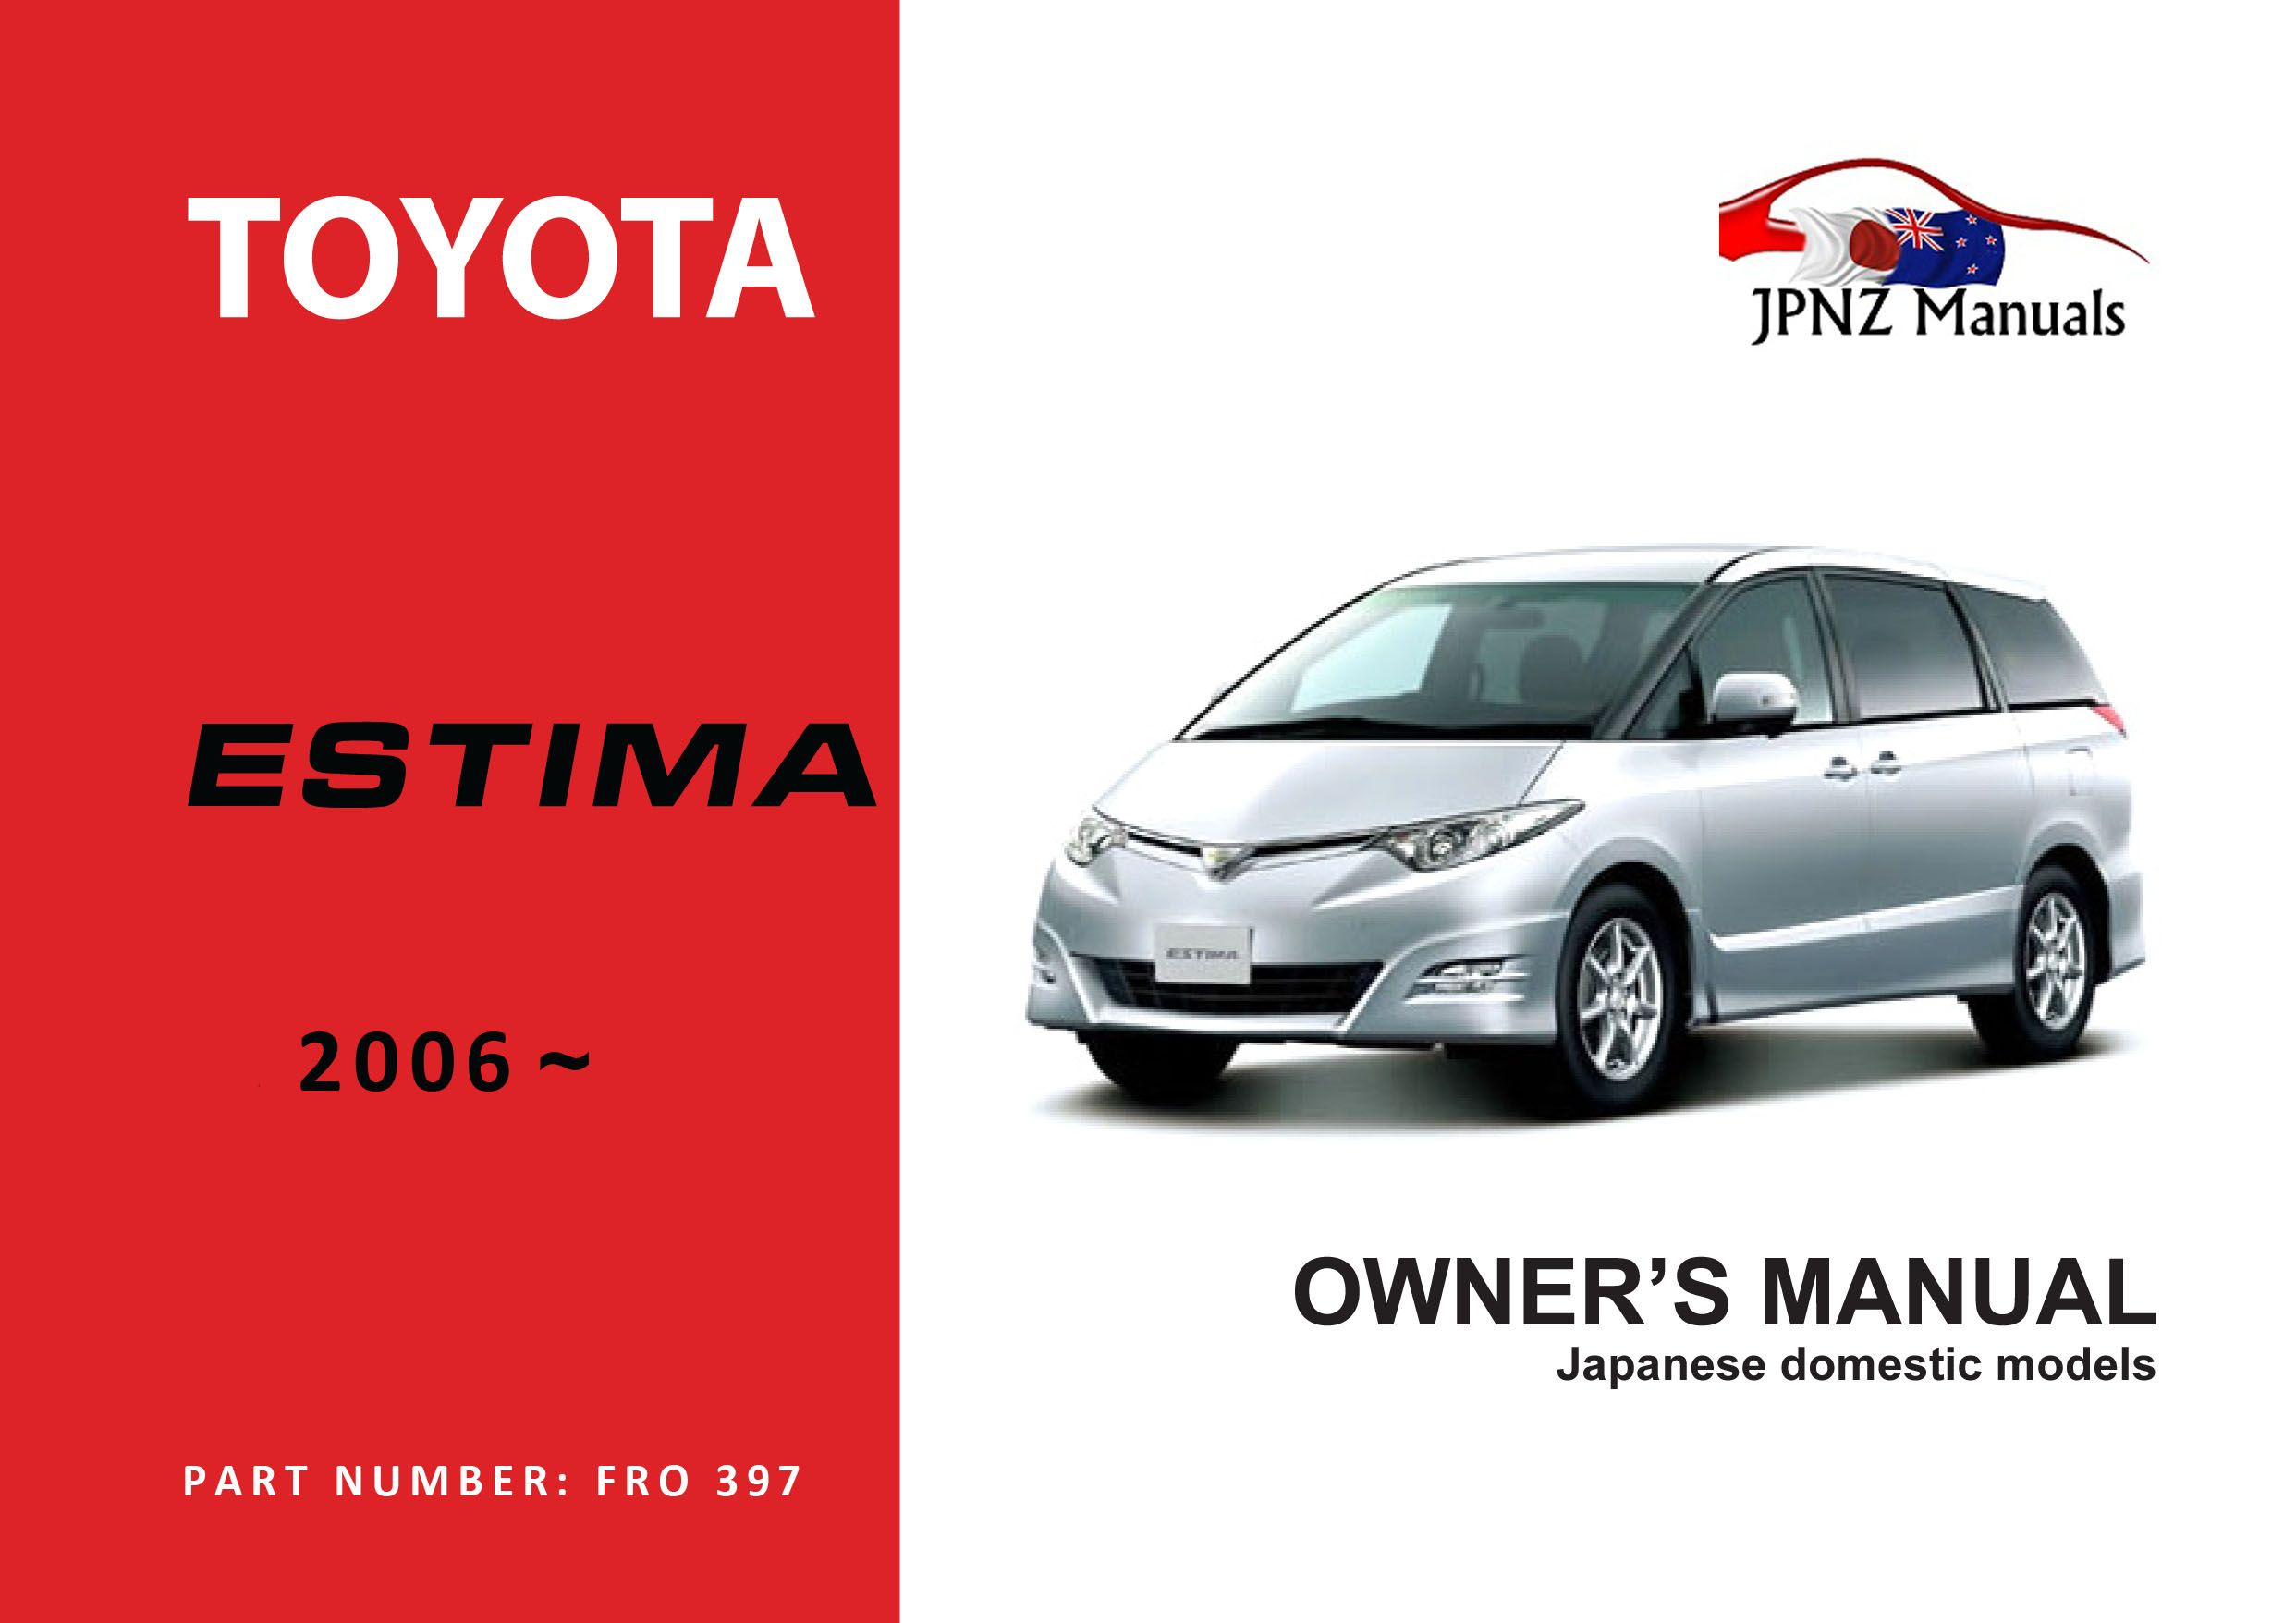 toyota estima owners manual owners handbook for the japanese import rh pinterest com toyota previa 2000 service manual toyota previa 2000 service manual